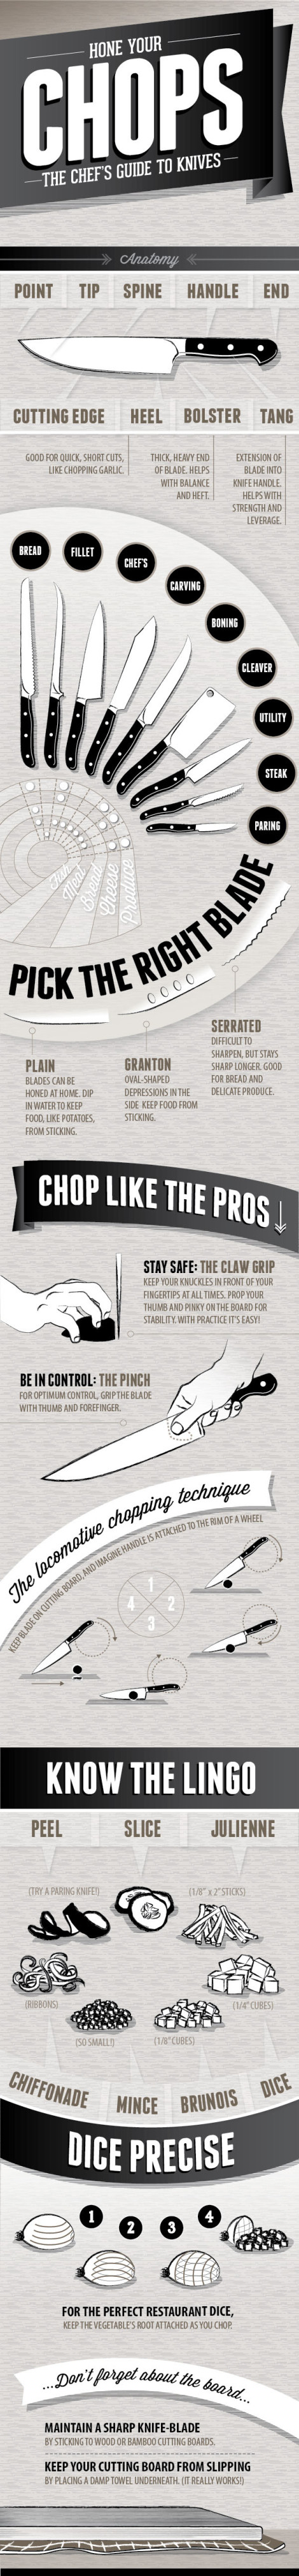 Knife Skills~ A Healthy Hunger